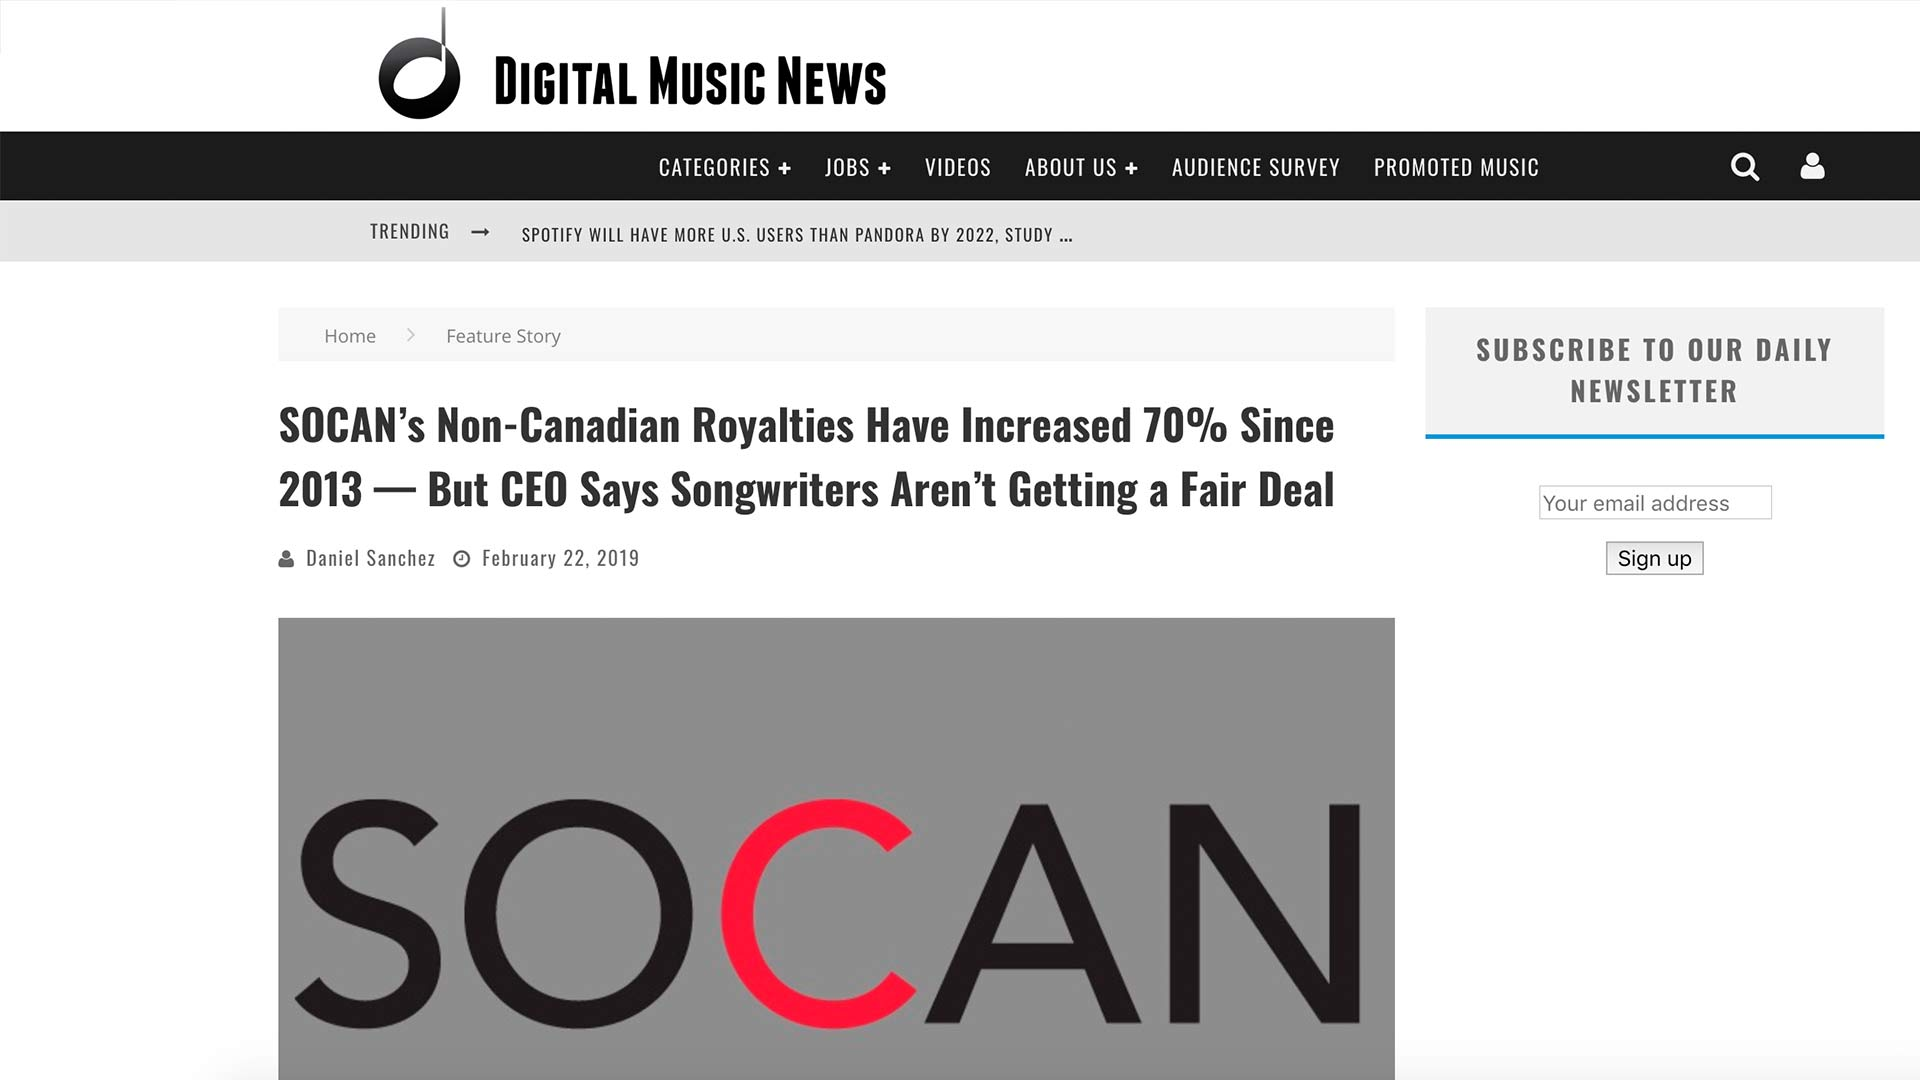 Fairness Rocks News SOCAN's Non-Canadian Royalties Have Increased 70% Since 2013 — But CEO Says Songwriters Aren't Getting a Fair Deal